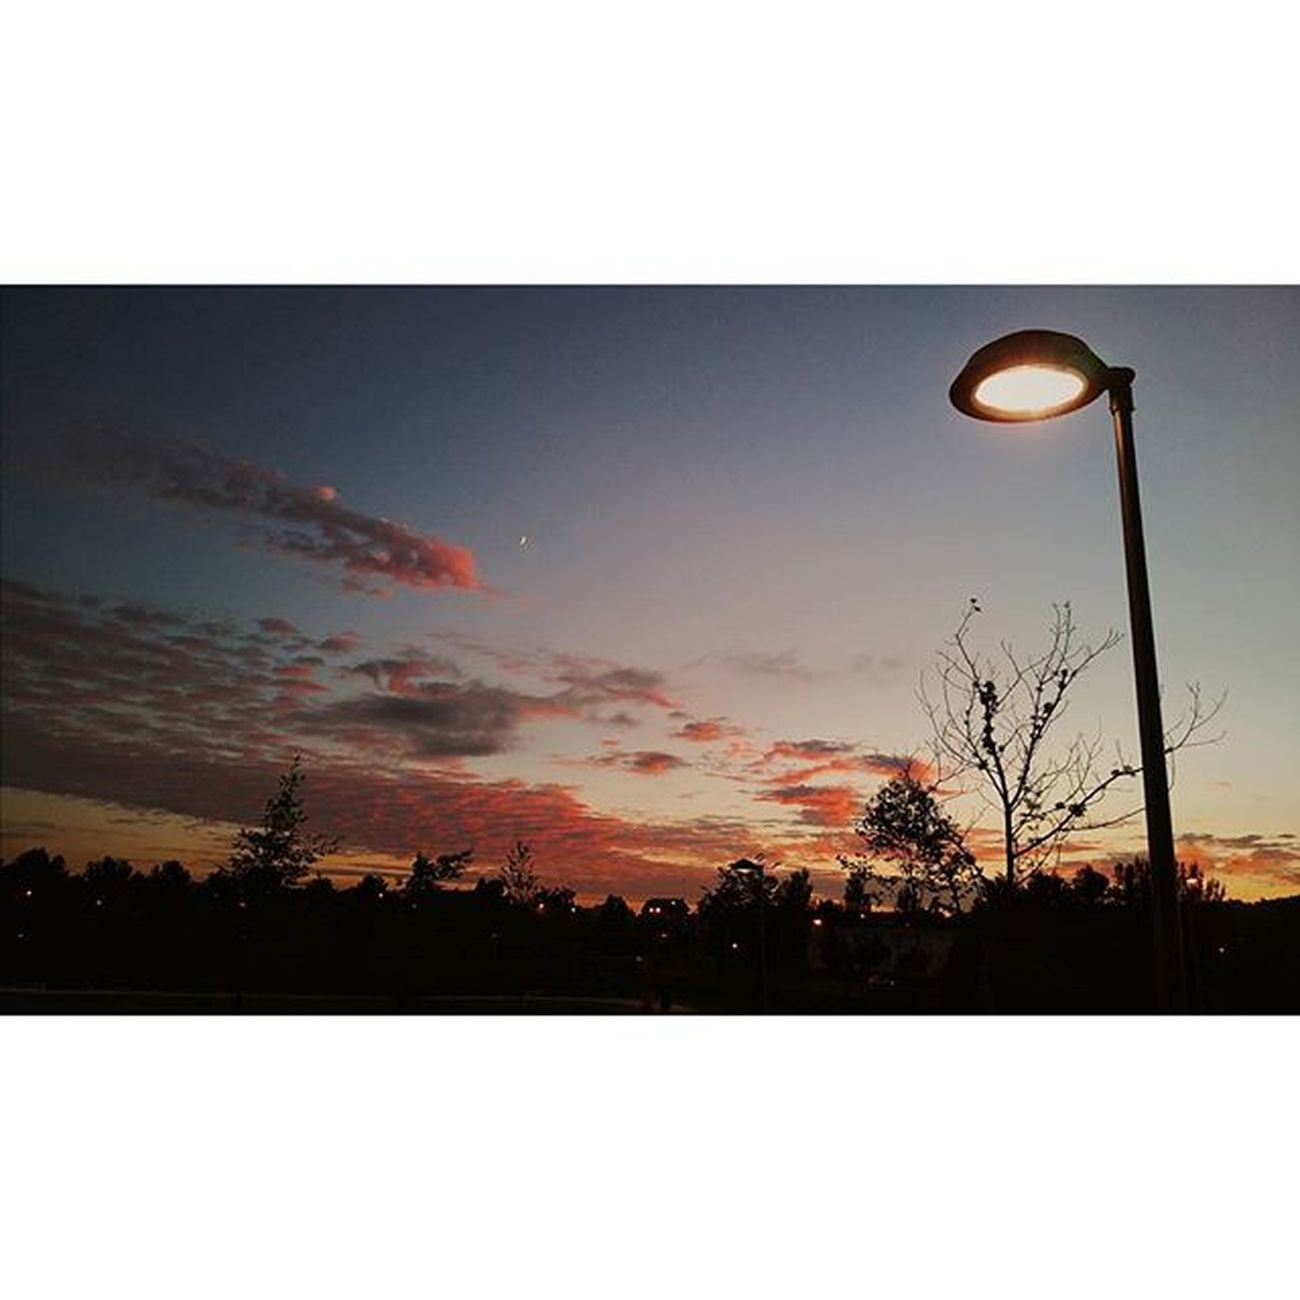 Instasize Vscocam Vscolovers Madeinpt Jrodrigues Photographer Photograph Vsco_pt Sunsetlovers Sunset Summer Sun Parquedacidade Fafe Municipiofafe VSCO Presets Photooftheday Thebest Top Photooftheday Running Run